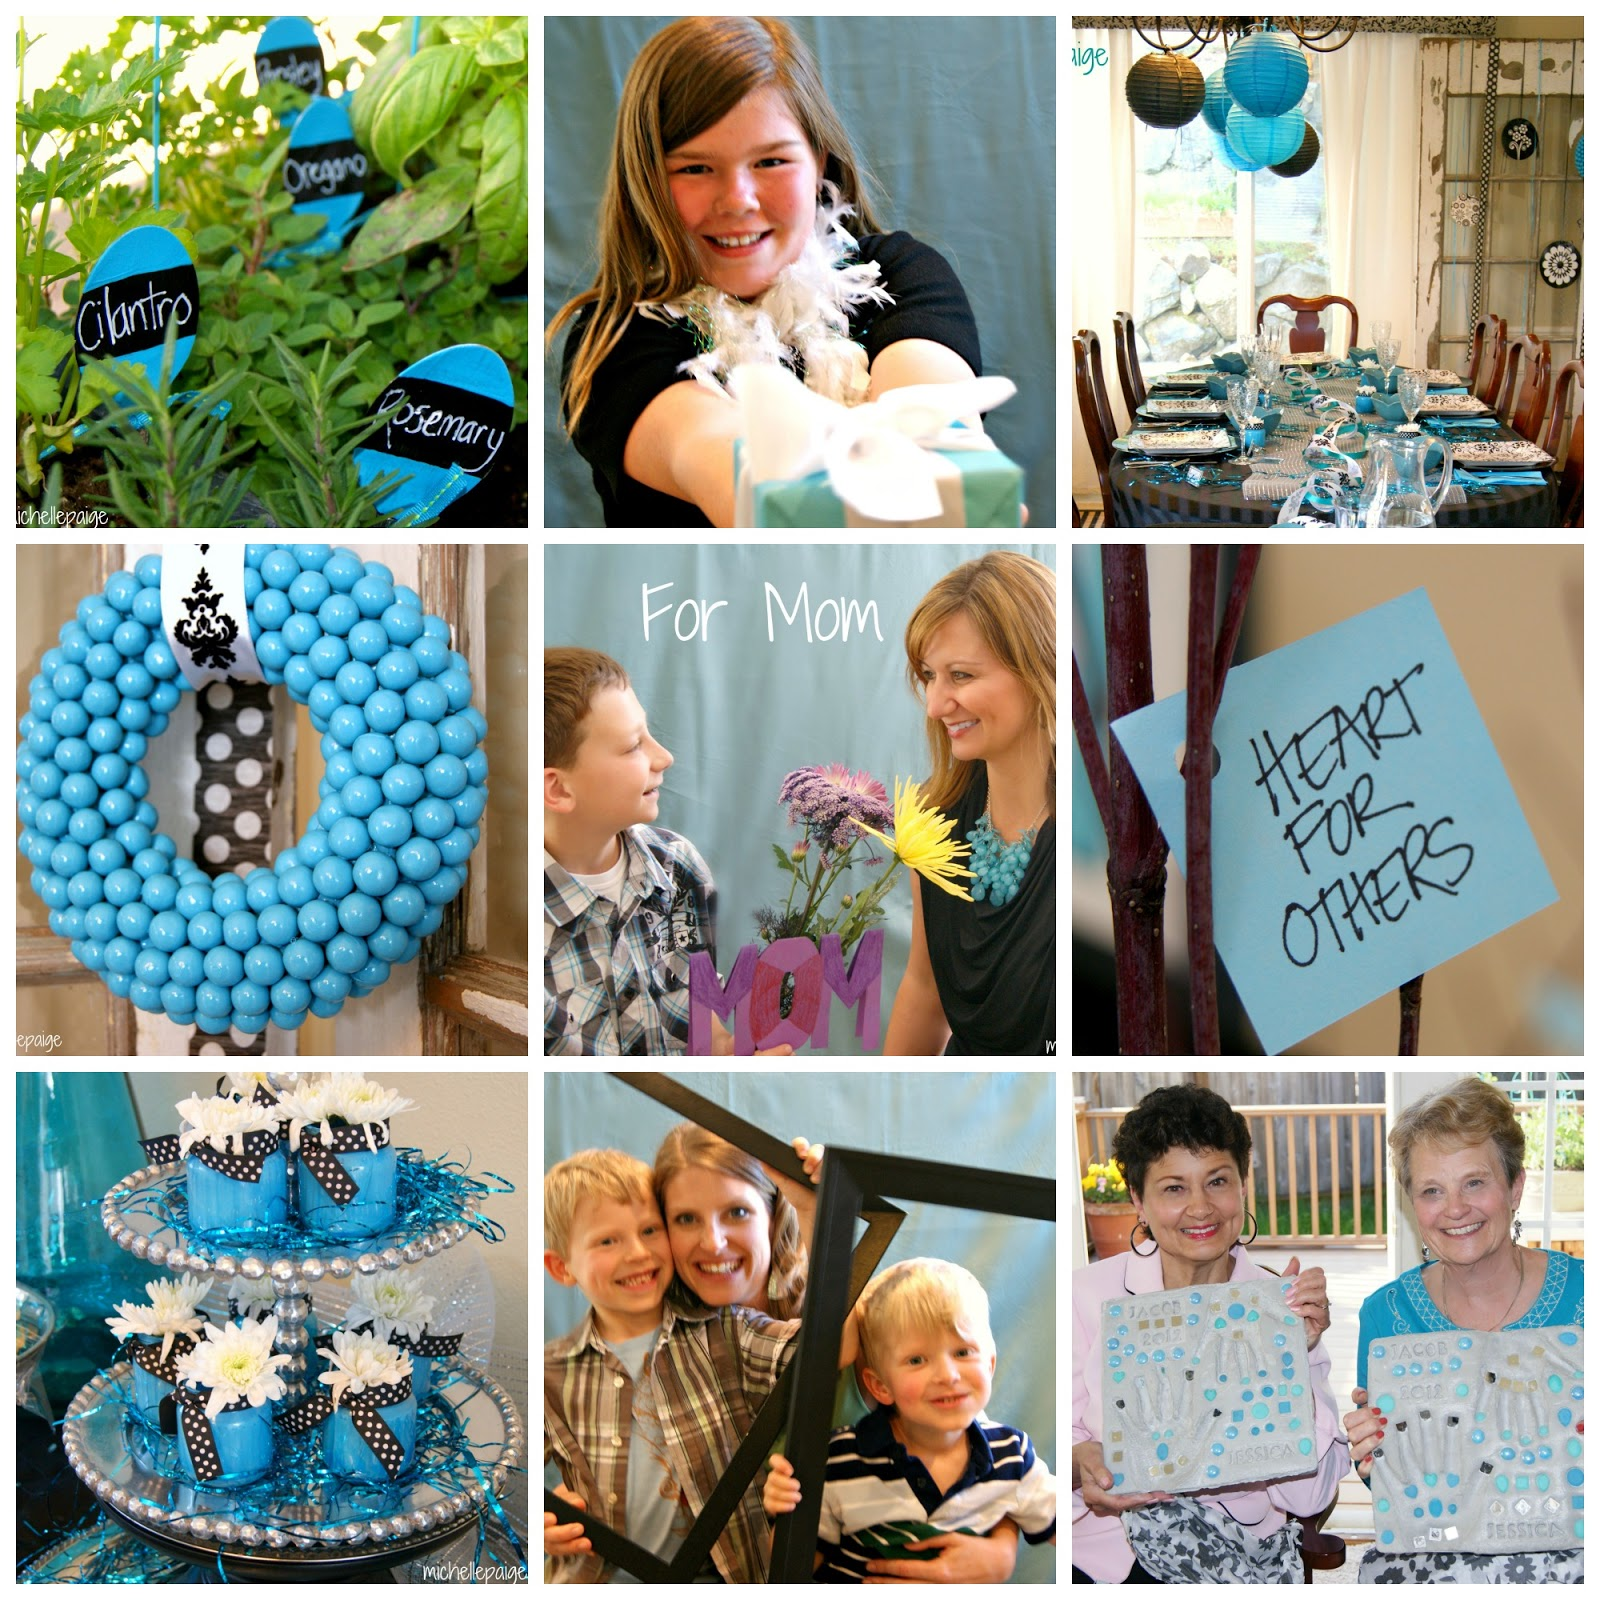 Turquoise Mother's Day Ideas @michellepaigeblogs.com